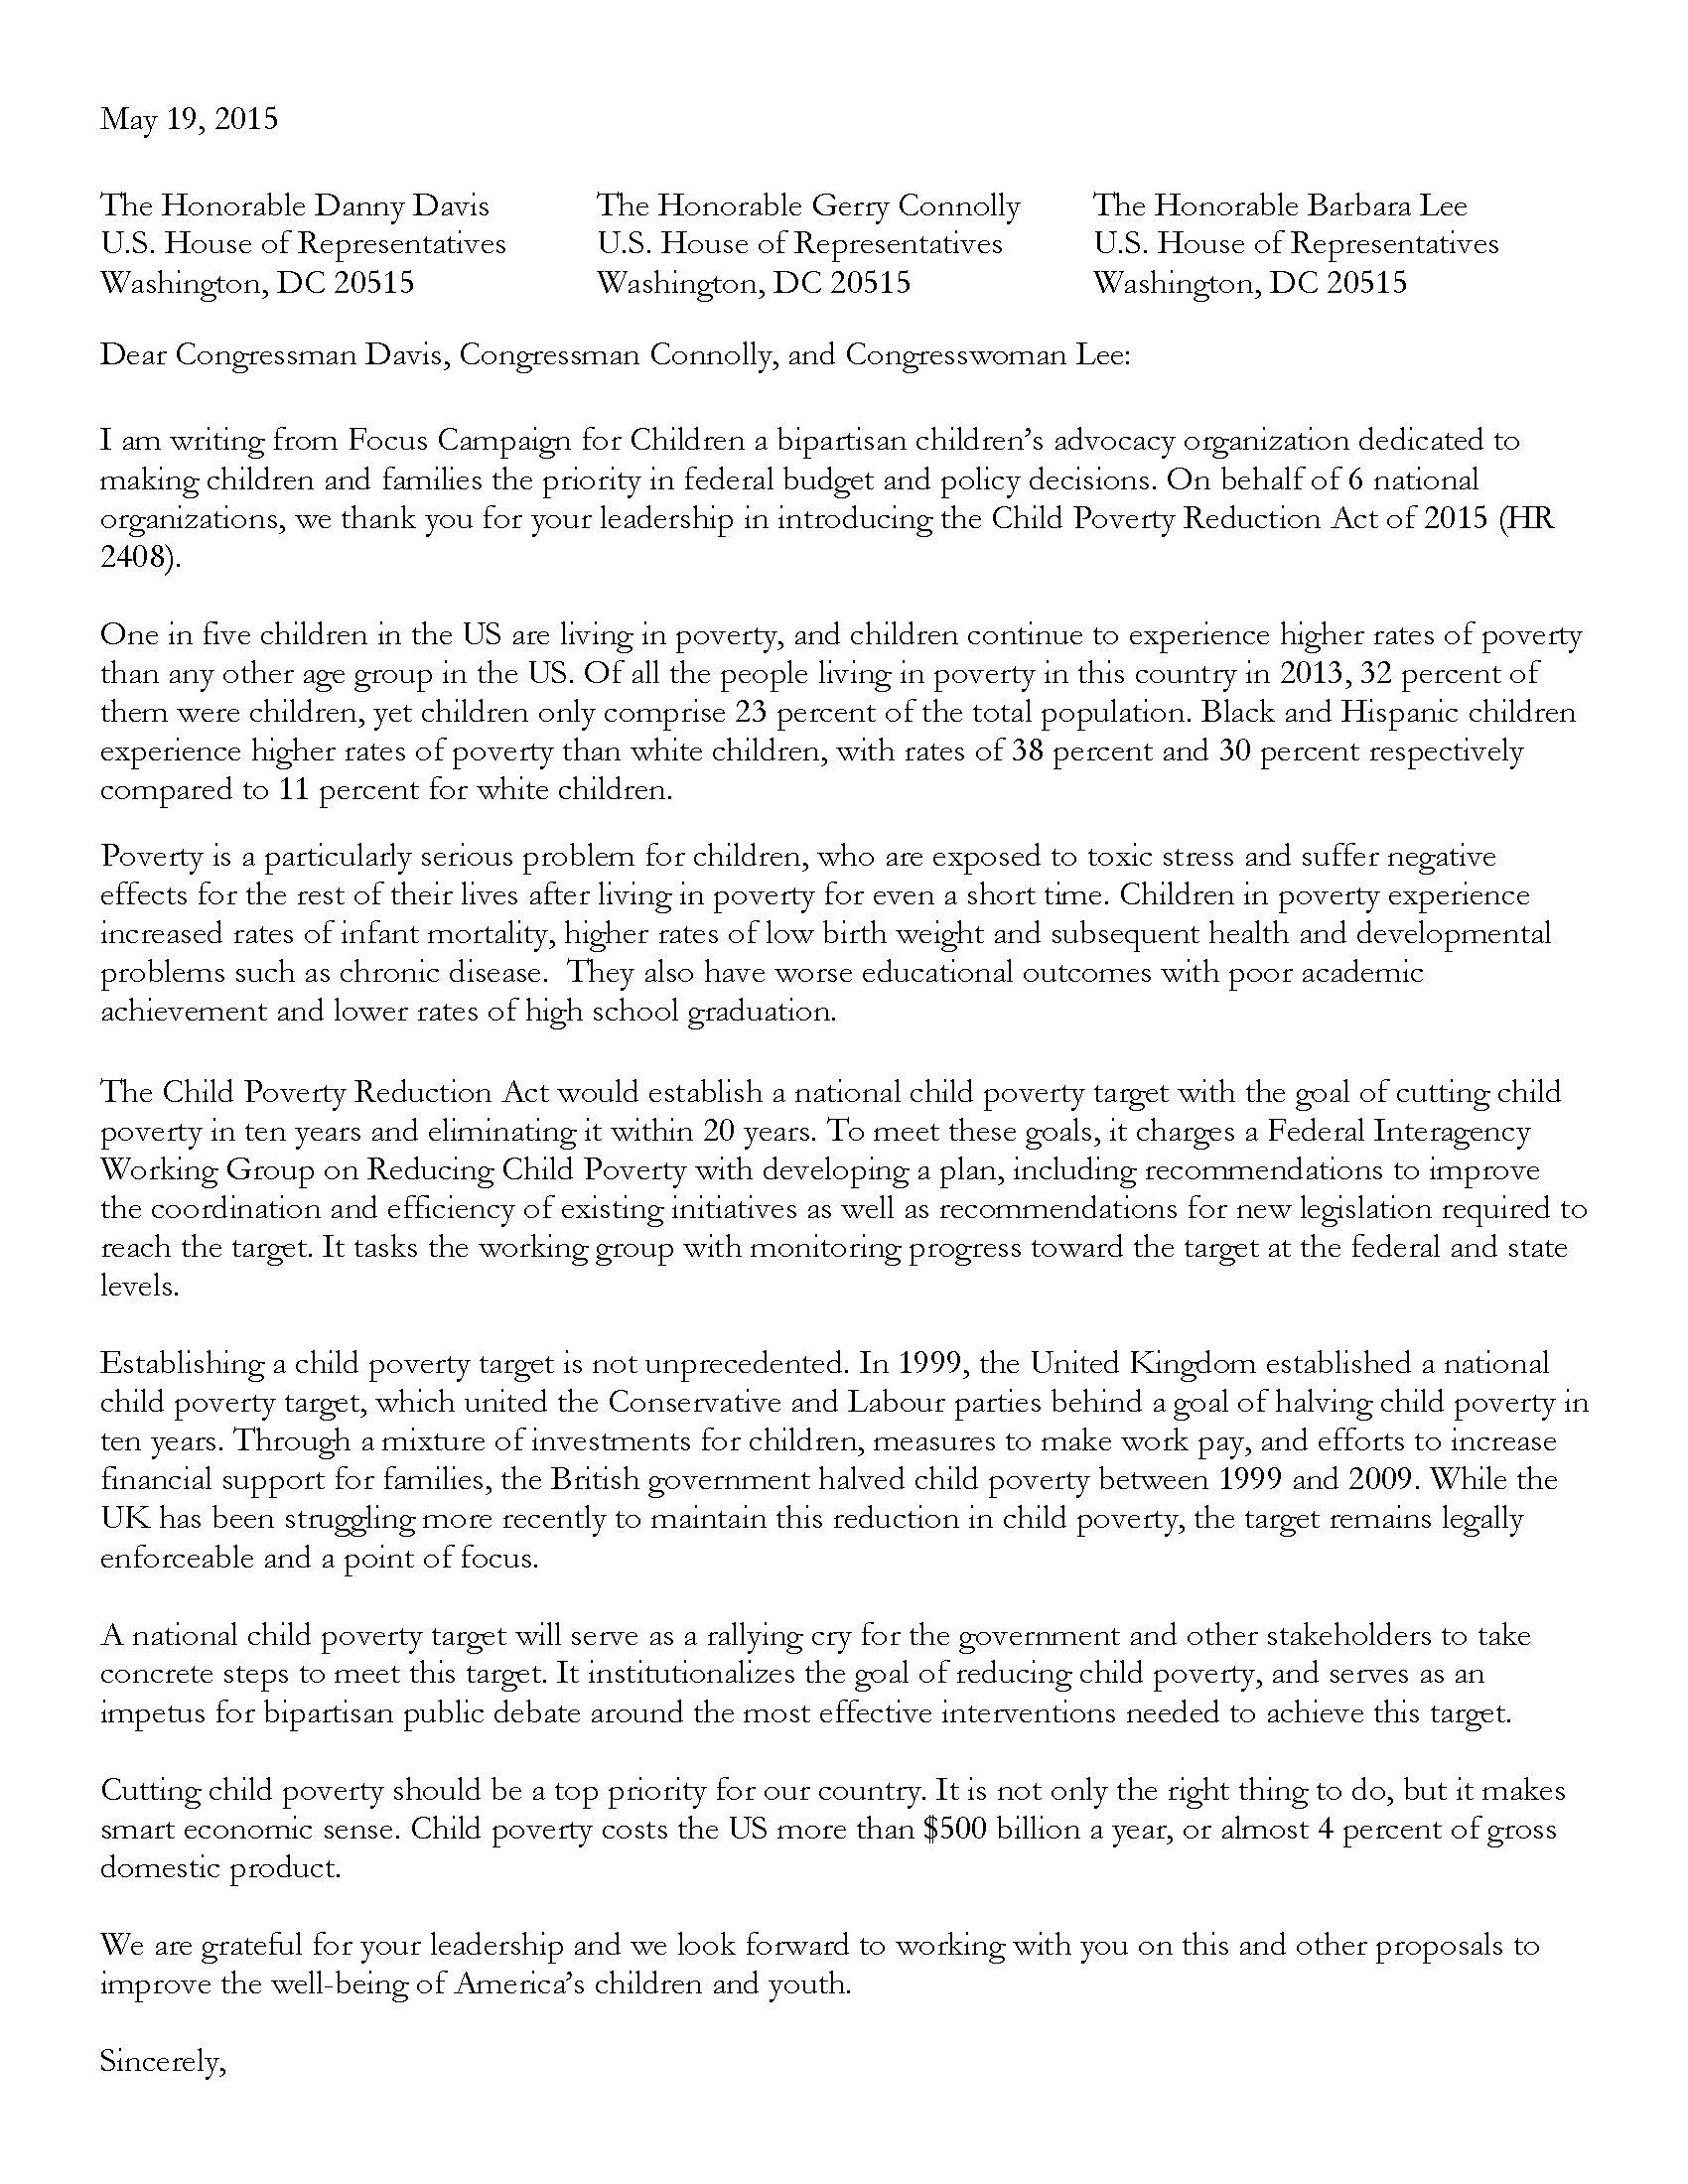 Letter of Support for Child Poverty Target Legislation_Page_1